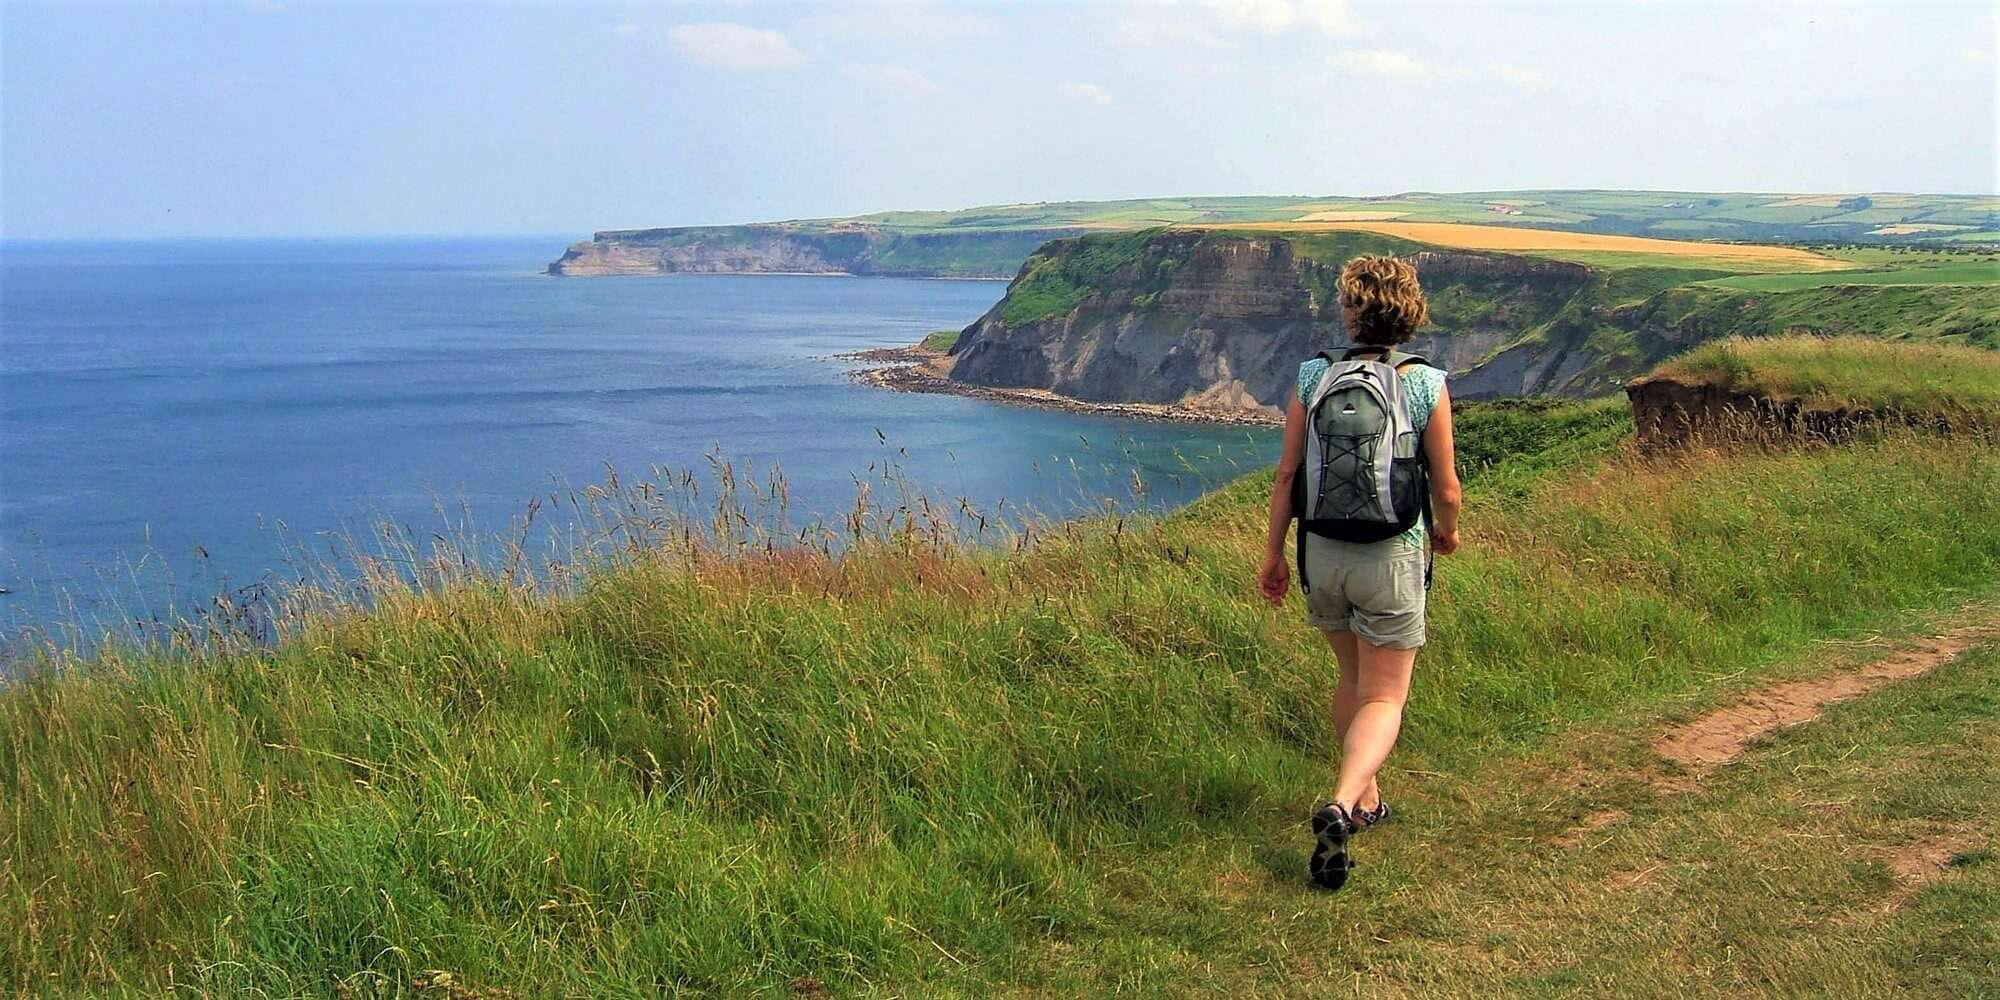 Hiker admiring the views out over the cliffs